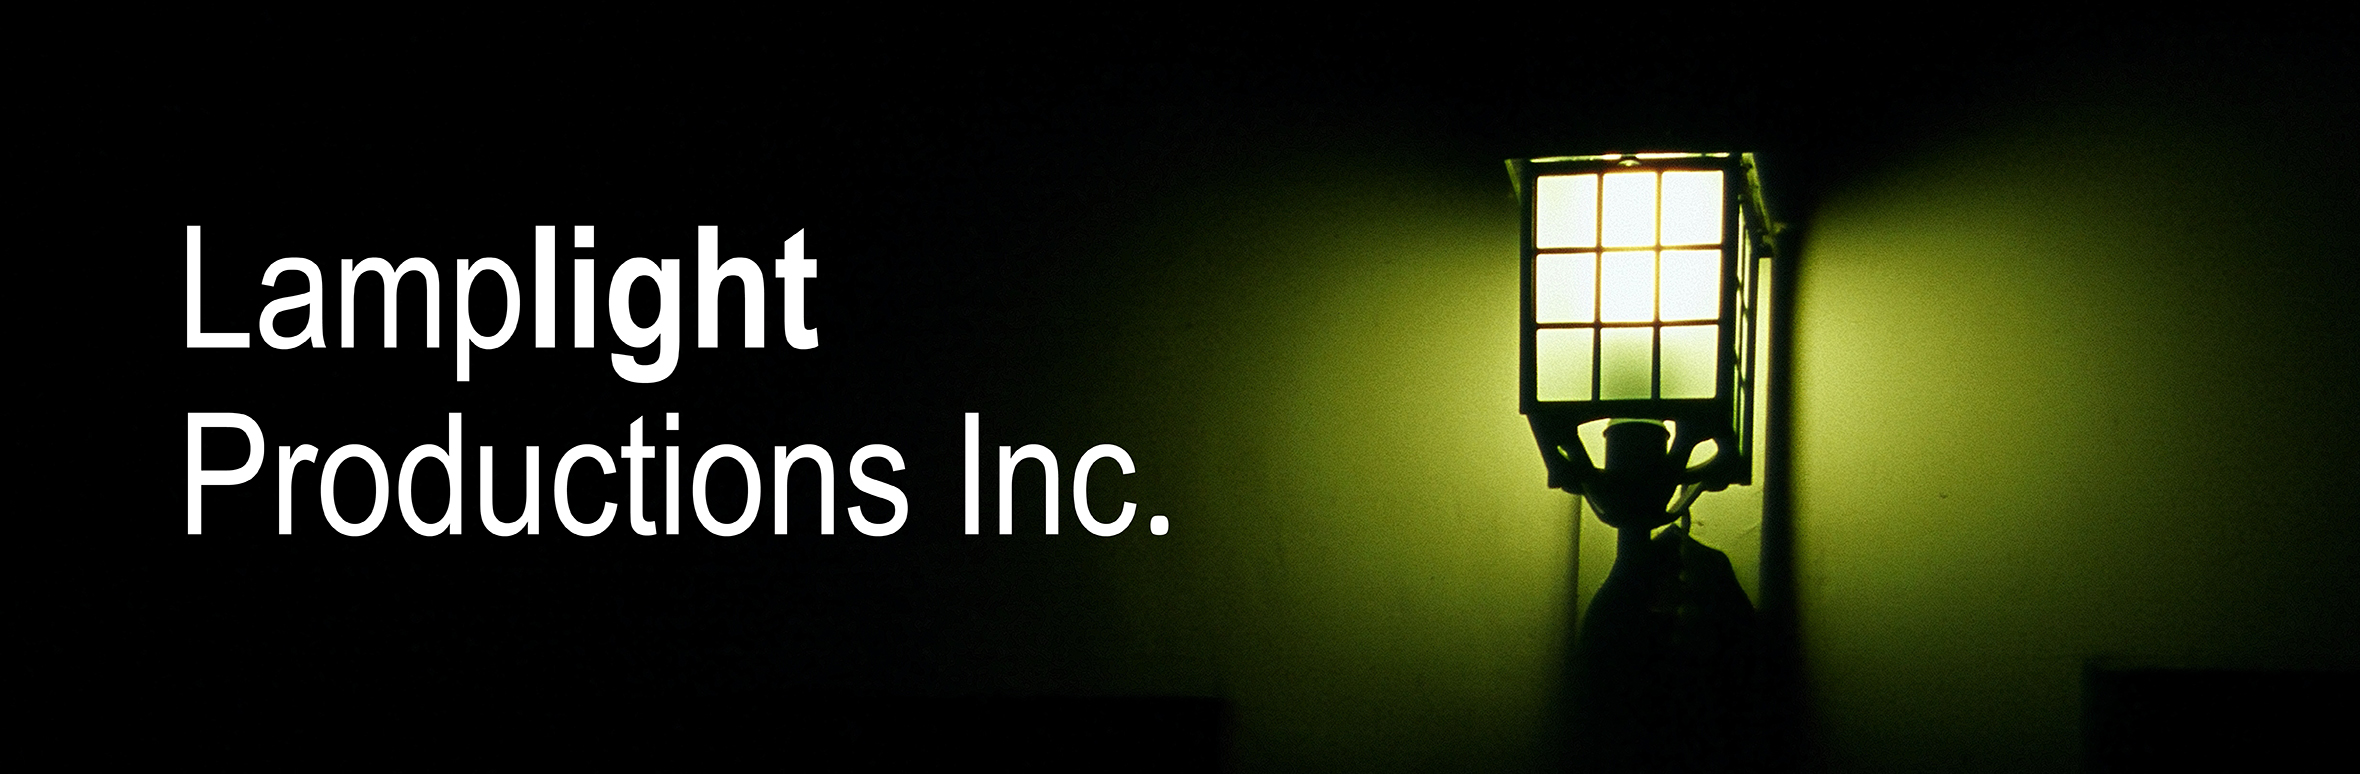 Lamplight Productions | Corporate Commercial Video